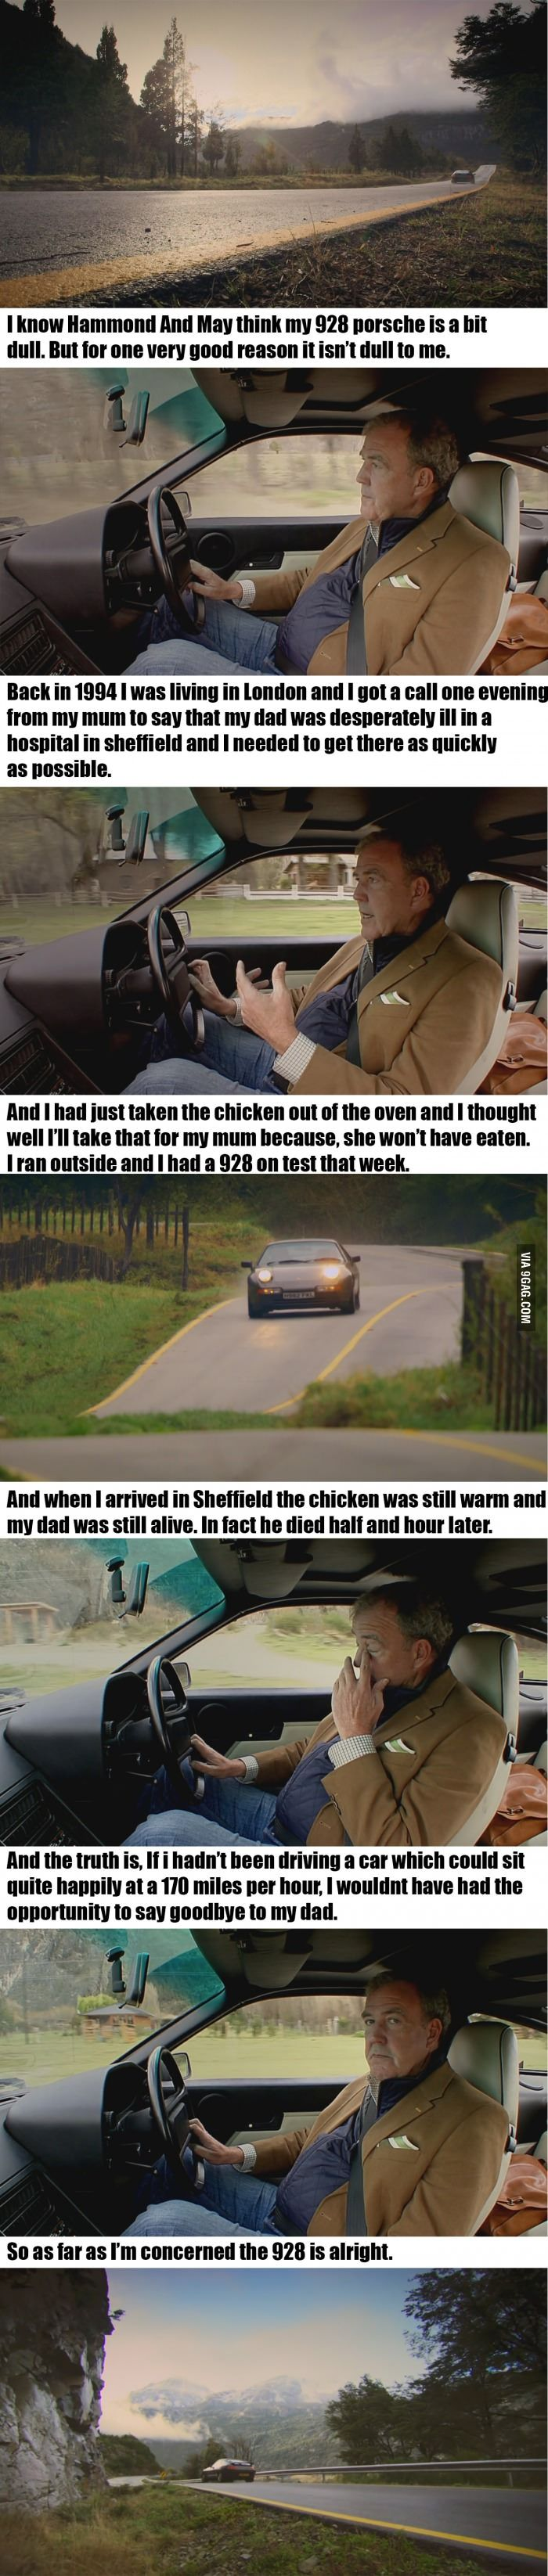 TopGear Feels. I love Jezza a little bit more after this episode.